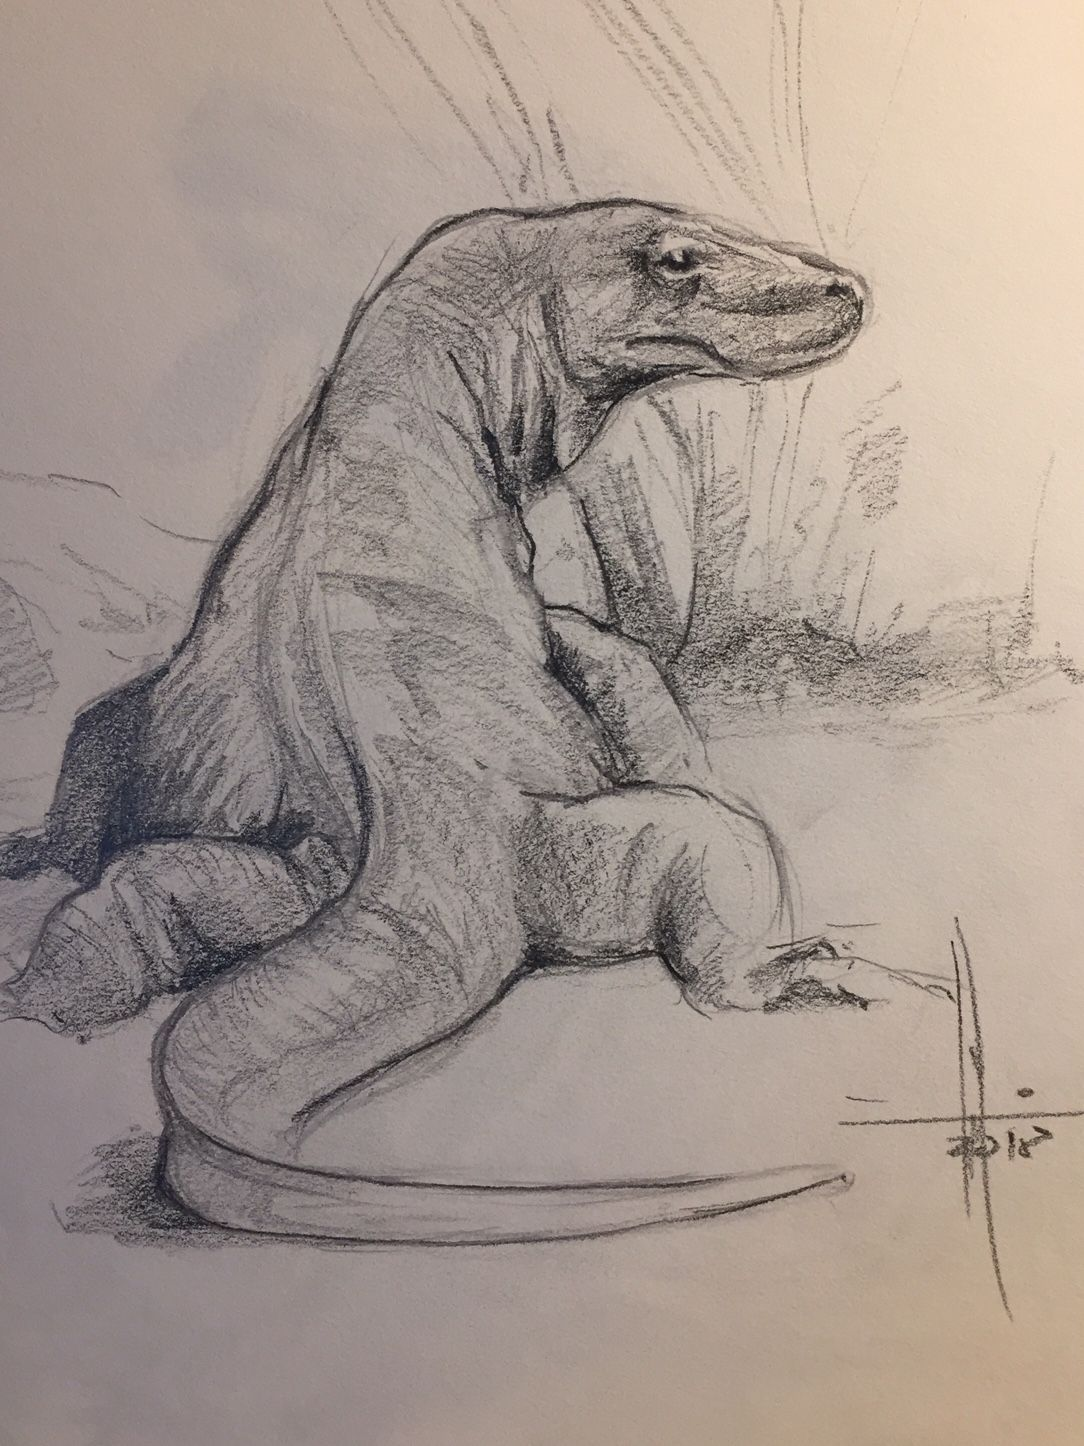 Dibujo Dragon Komodo A Lapiz Francisco Javier Abellan Komodo Dragon Dragon Sketch Animals Artwork